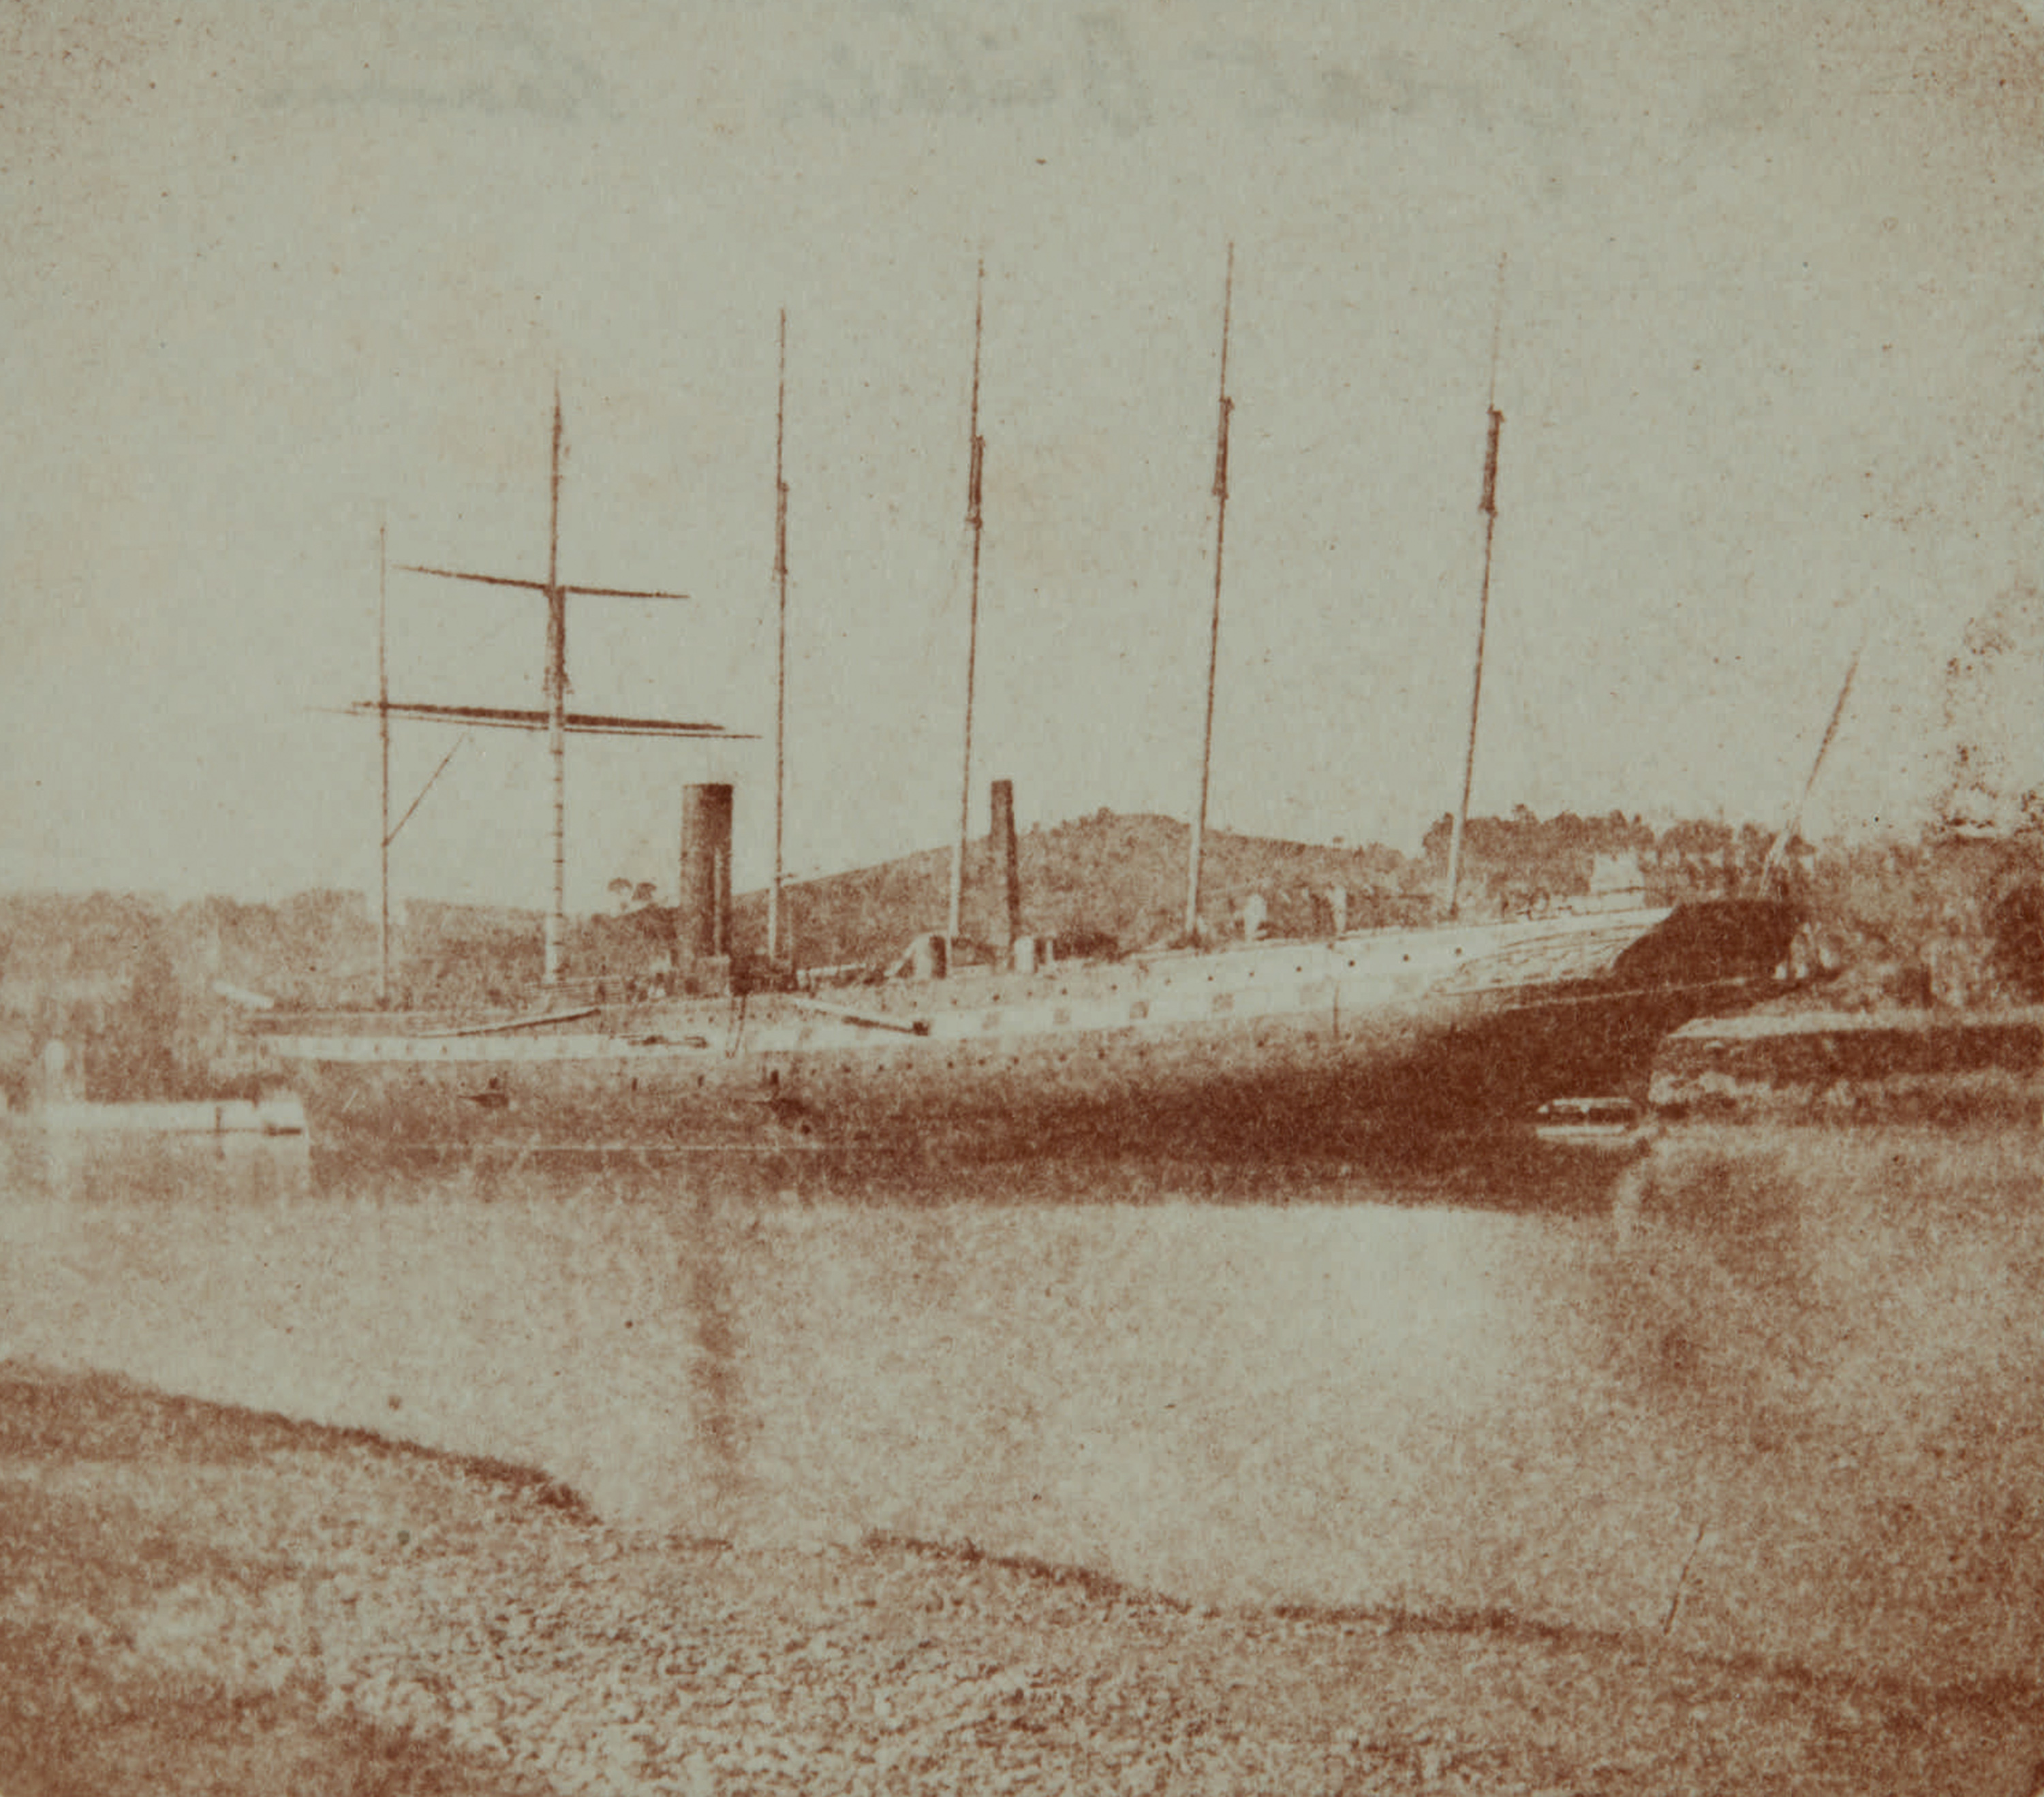 Fotó: William Henry Fox Talbot:<br />The S.S. Great Britain in Dock at low tide, Bristol (1843-45)<br />William Henry Fox Talbot Archive<br />Courtesy of Sotheby's